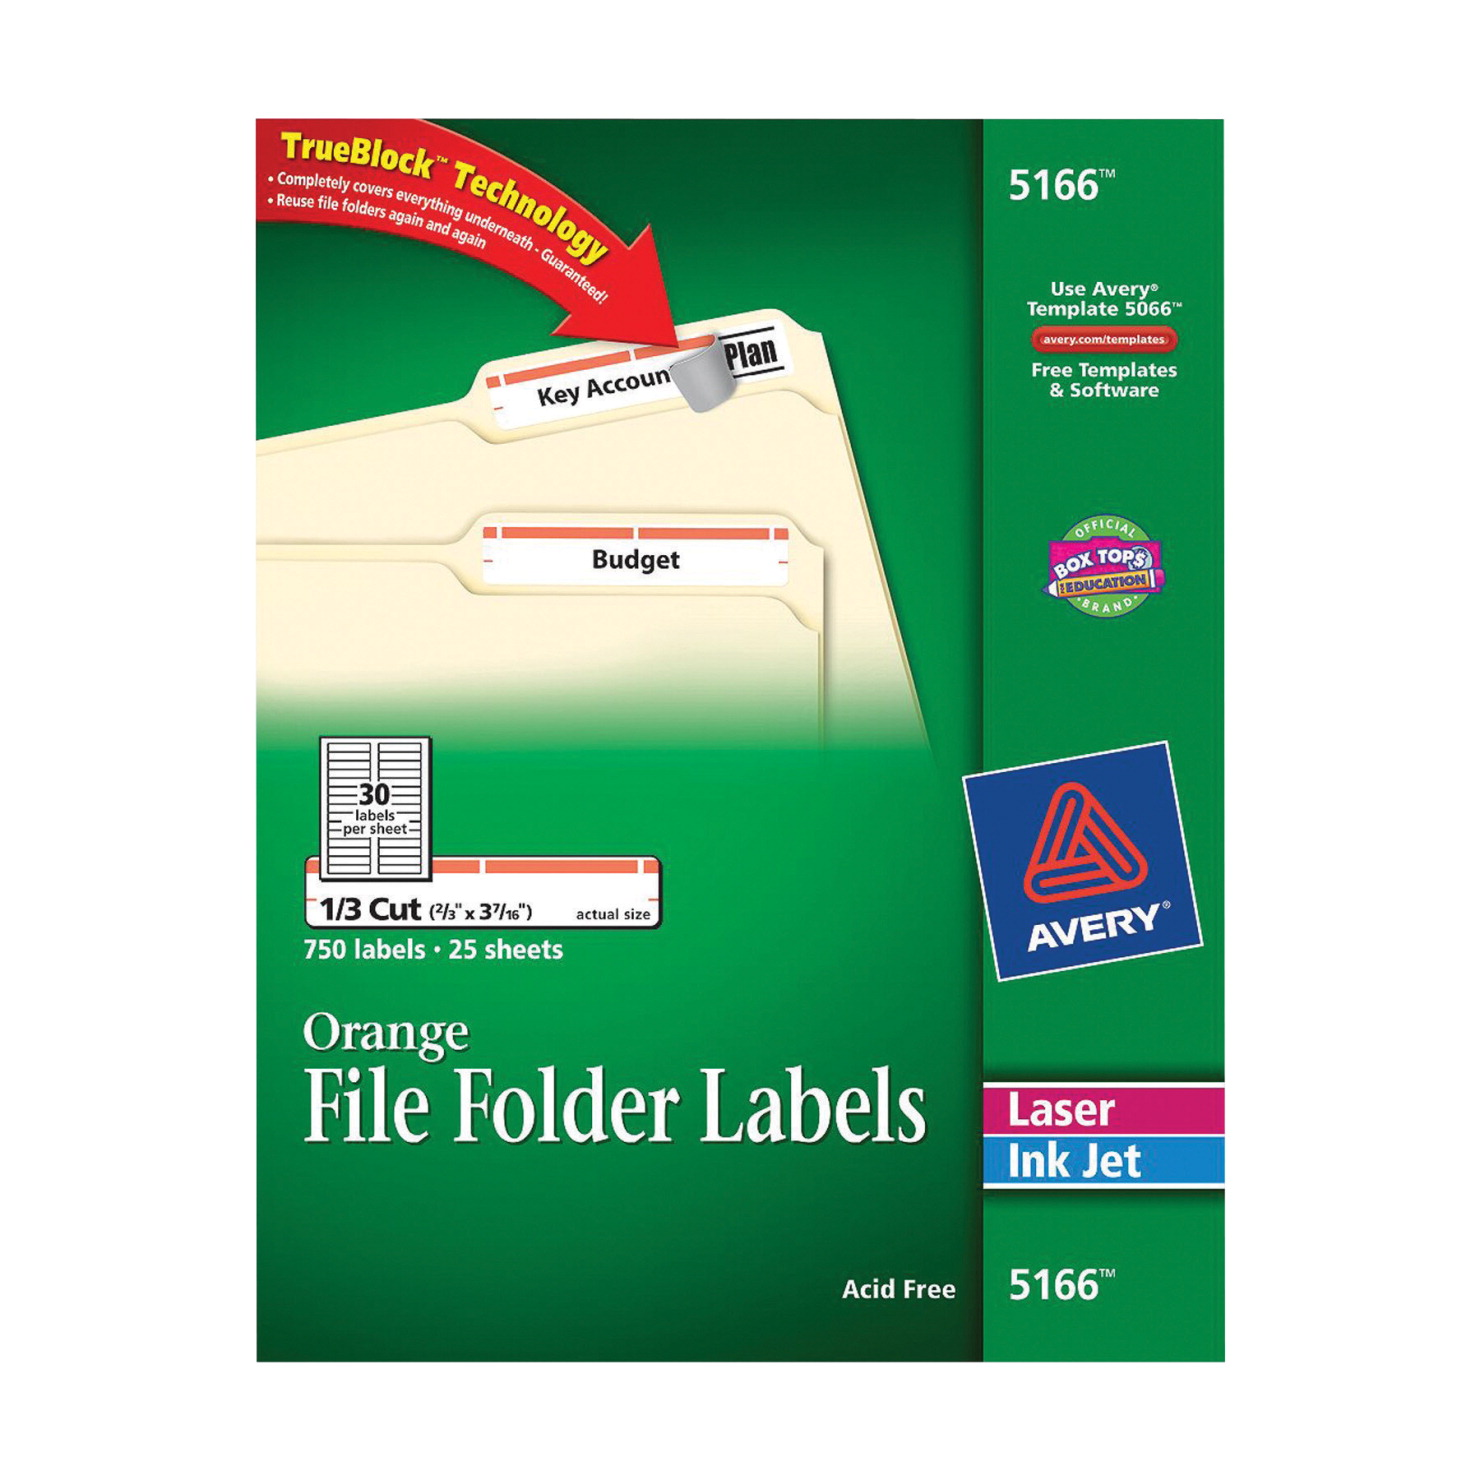 Filing label school specialty marketplace for Avery 5166 template